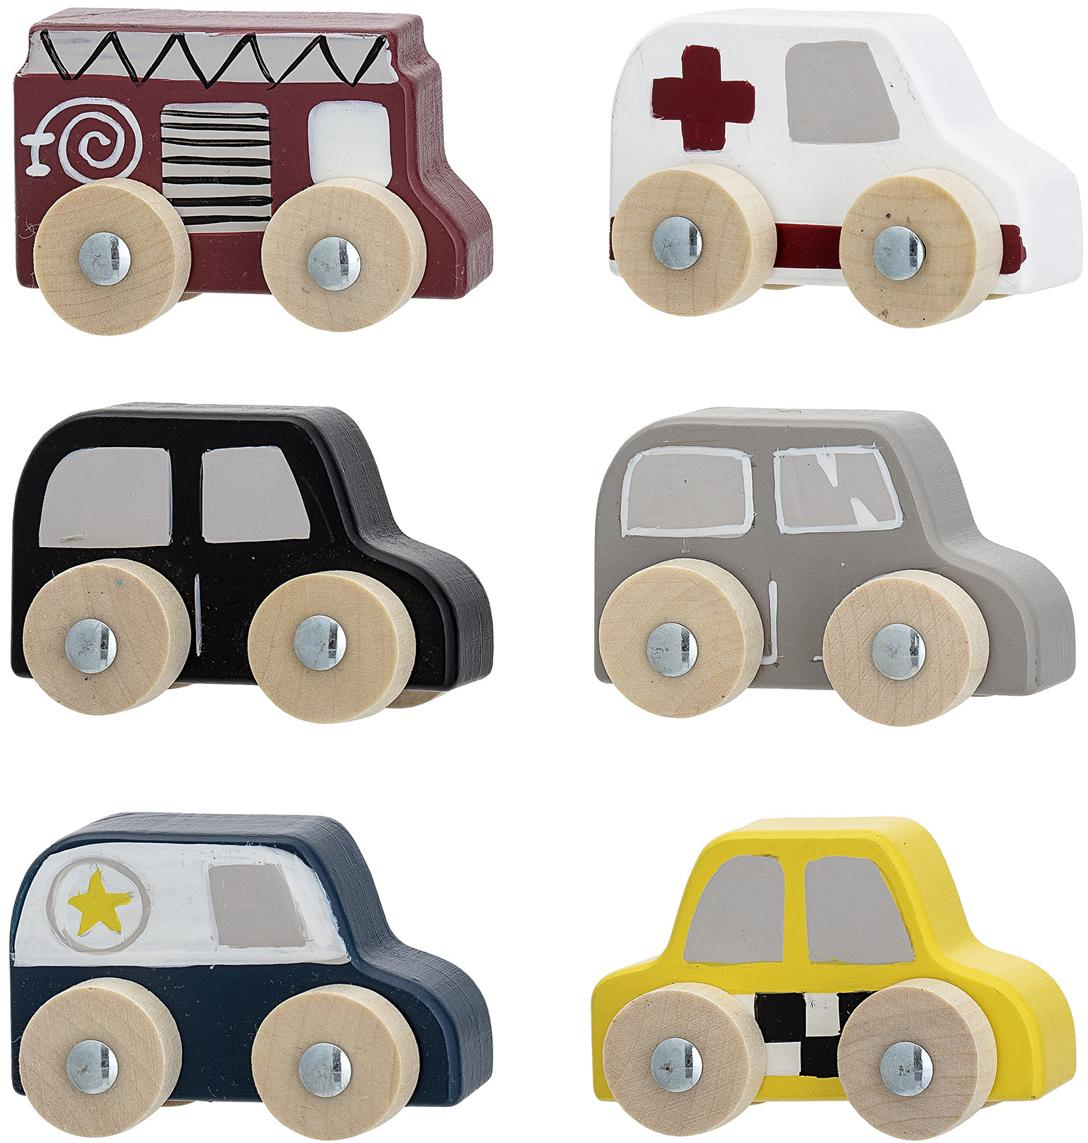 Set juguetes de coches Car, 6 pzas., Tablero de fibras de densidad media (MDF), madera de loto, Multicolor, An 20 x Al 23 cm